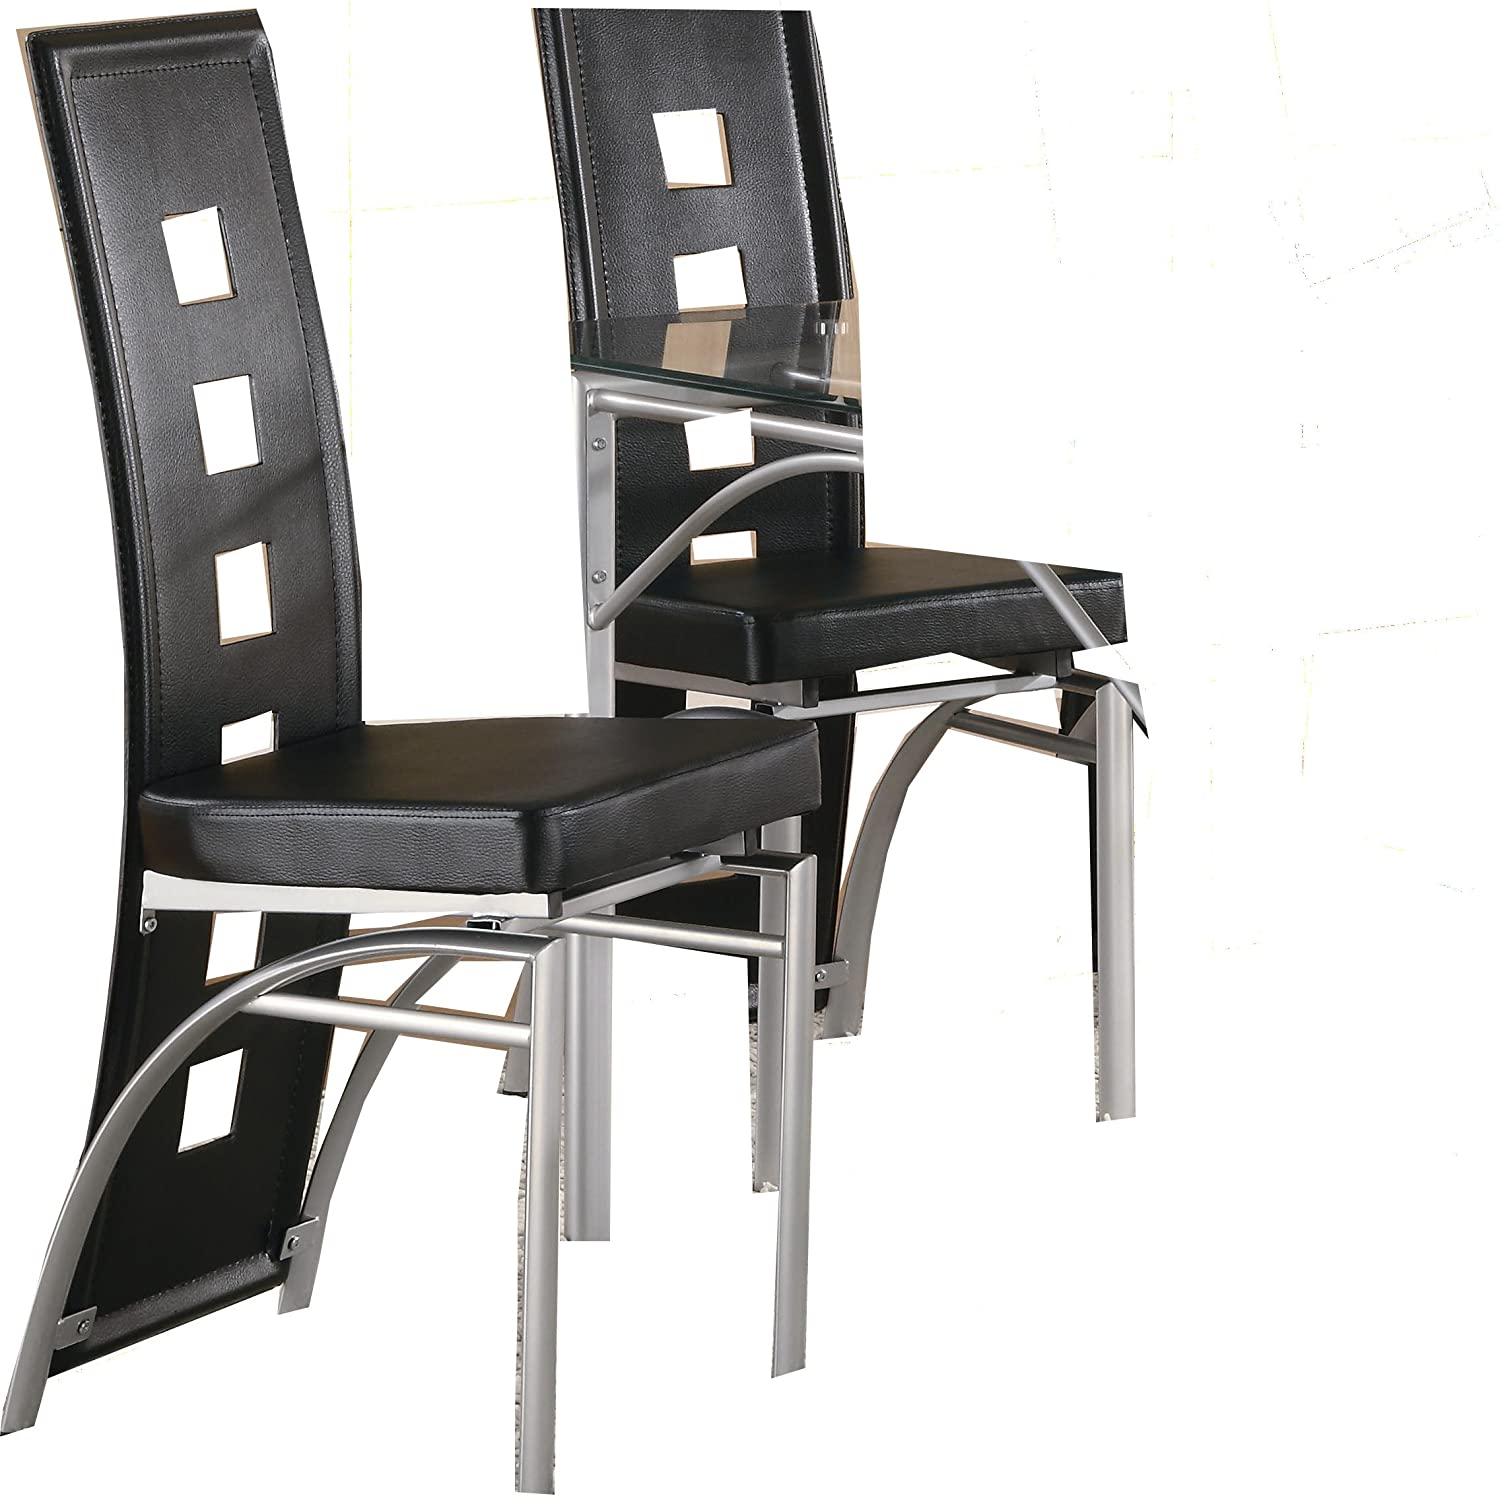 B amazon kitchen chairs